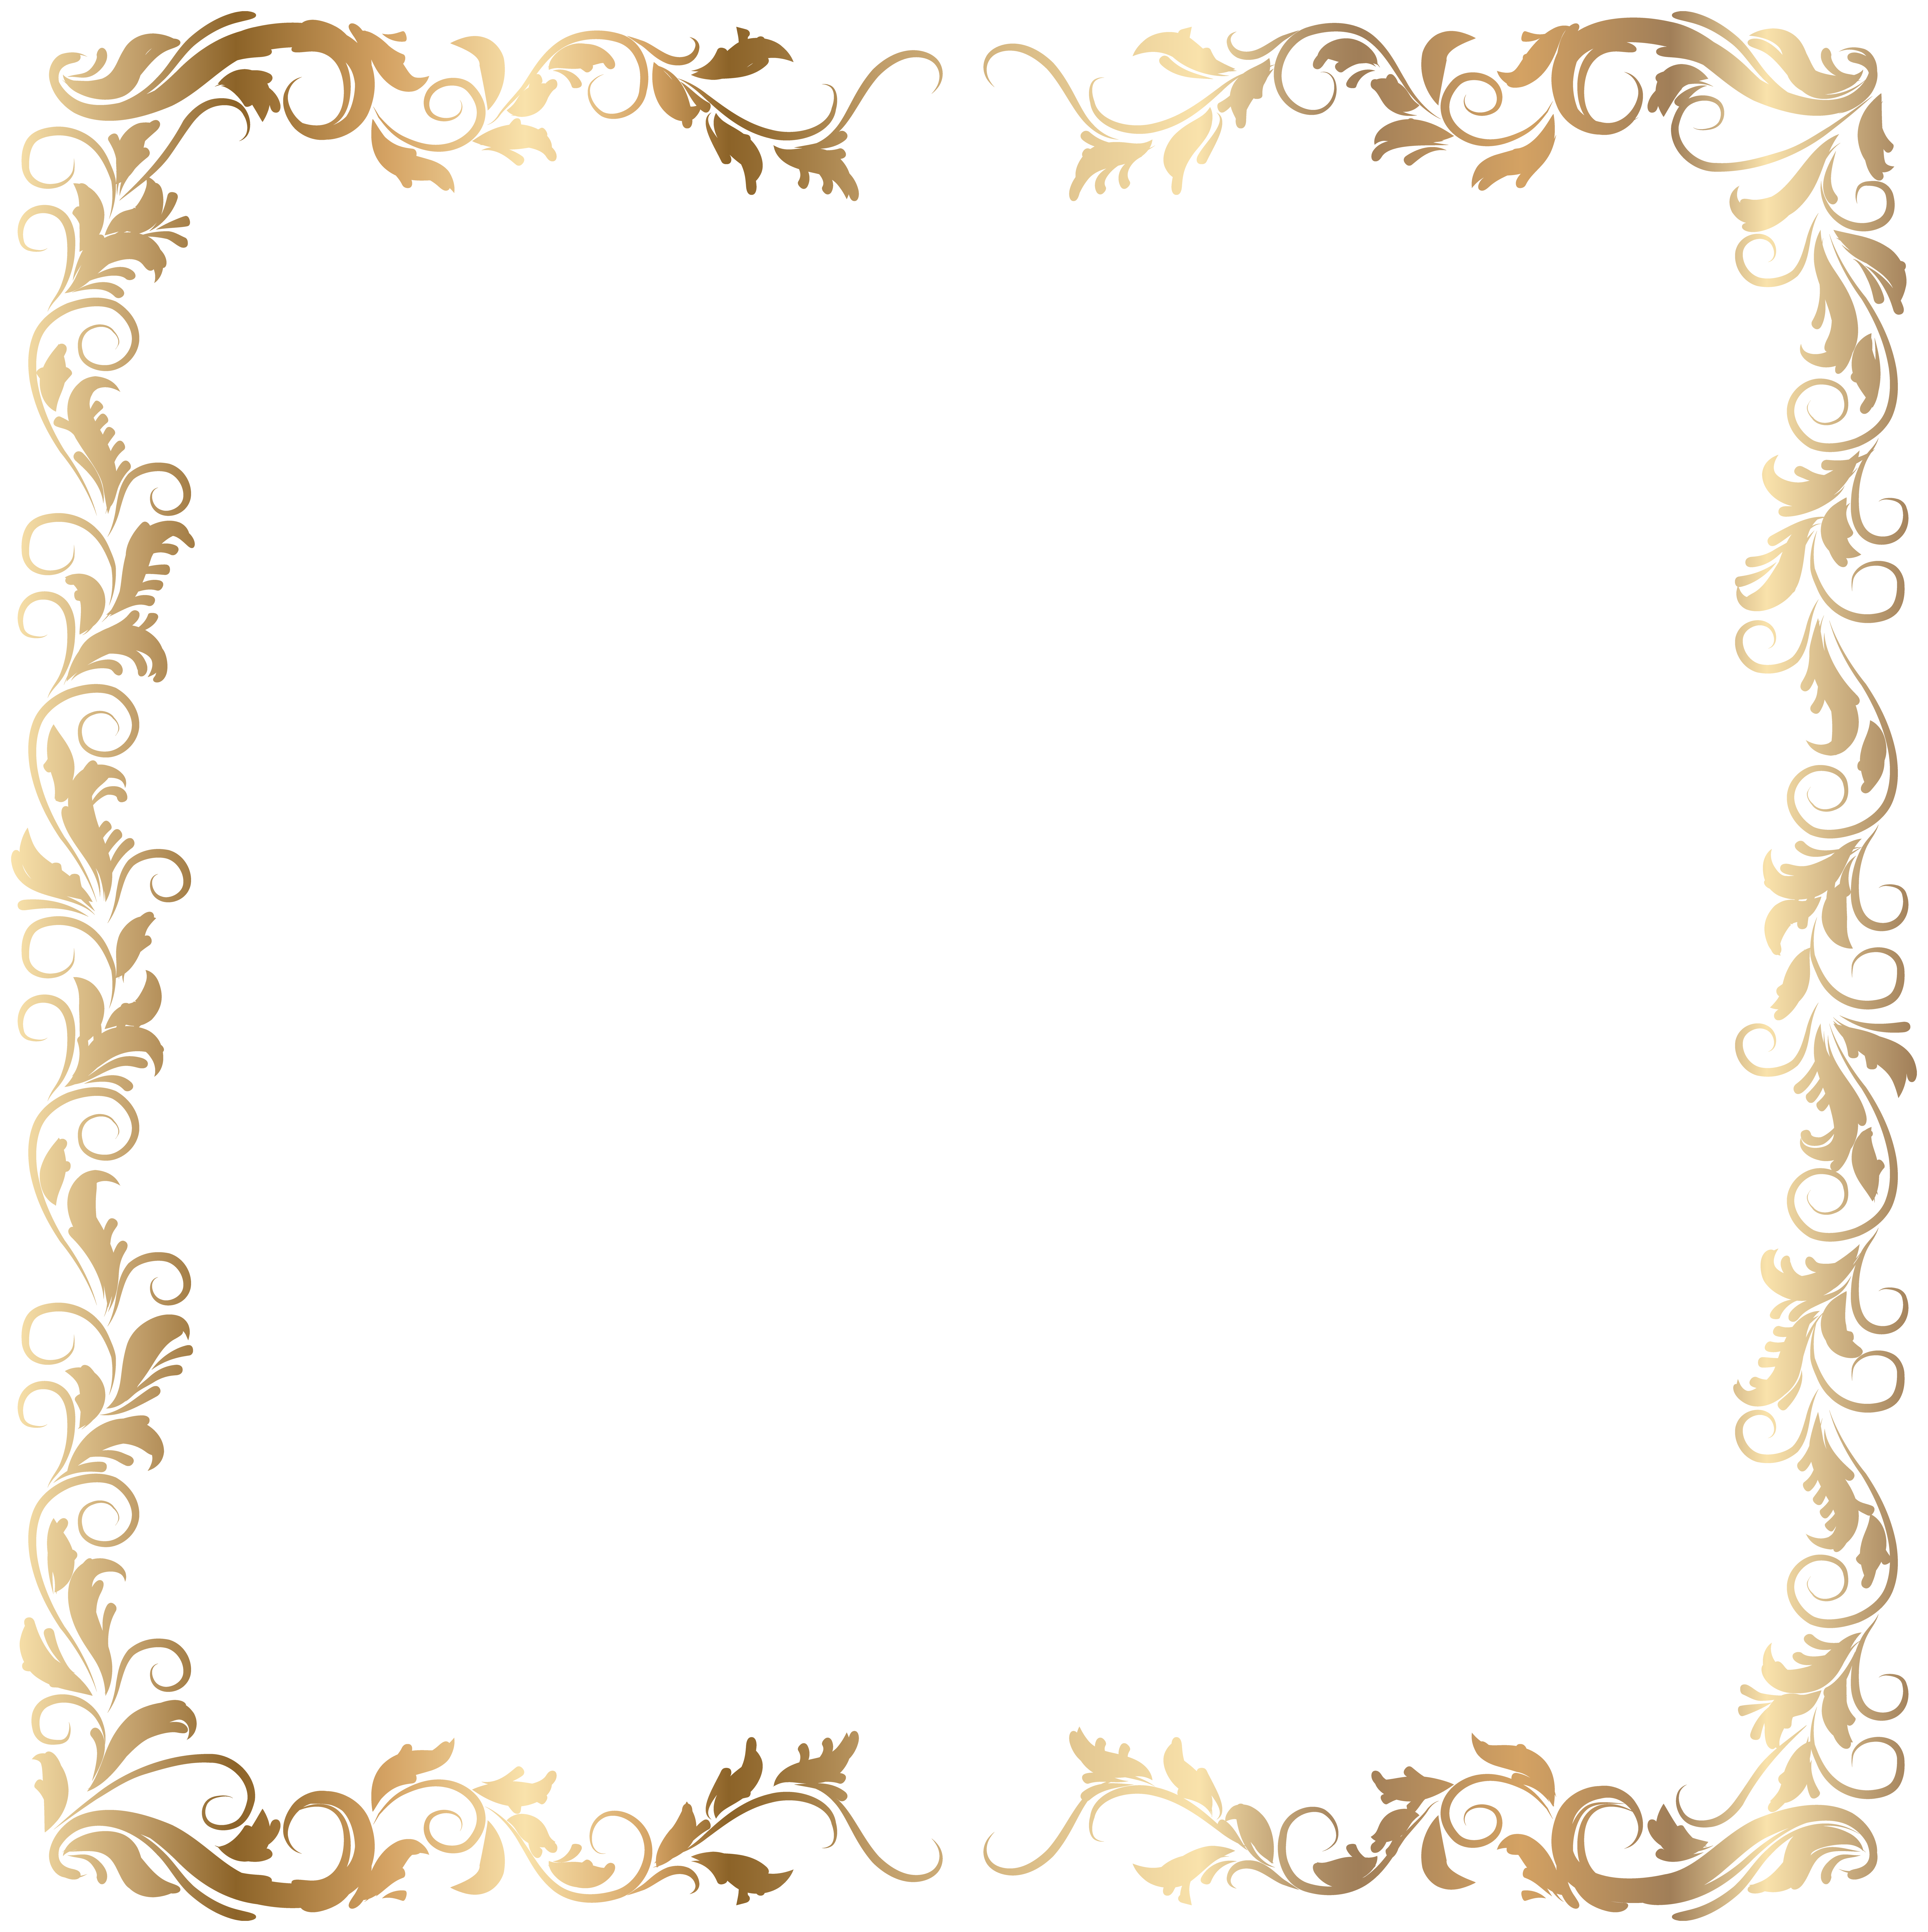 Queen crown broder clipart jpg free library Border Deco Frame Gold Transparent PNG Image | mara | Pinterest ... jpg free library